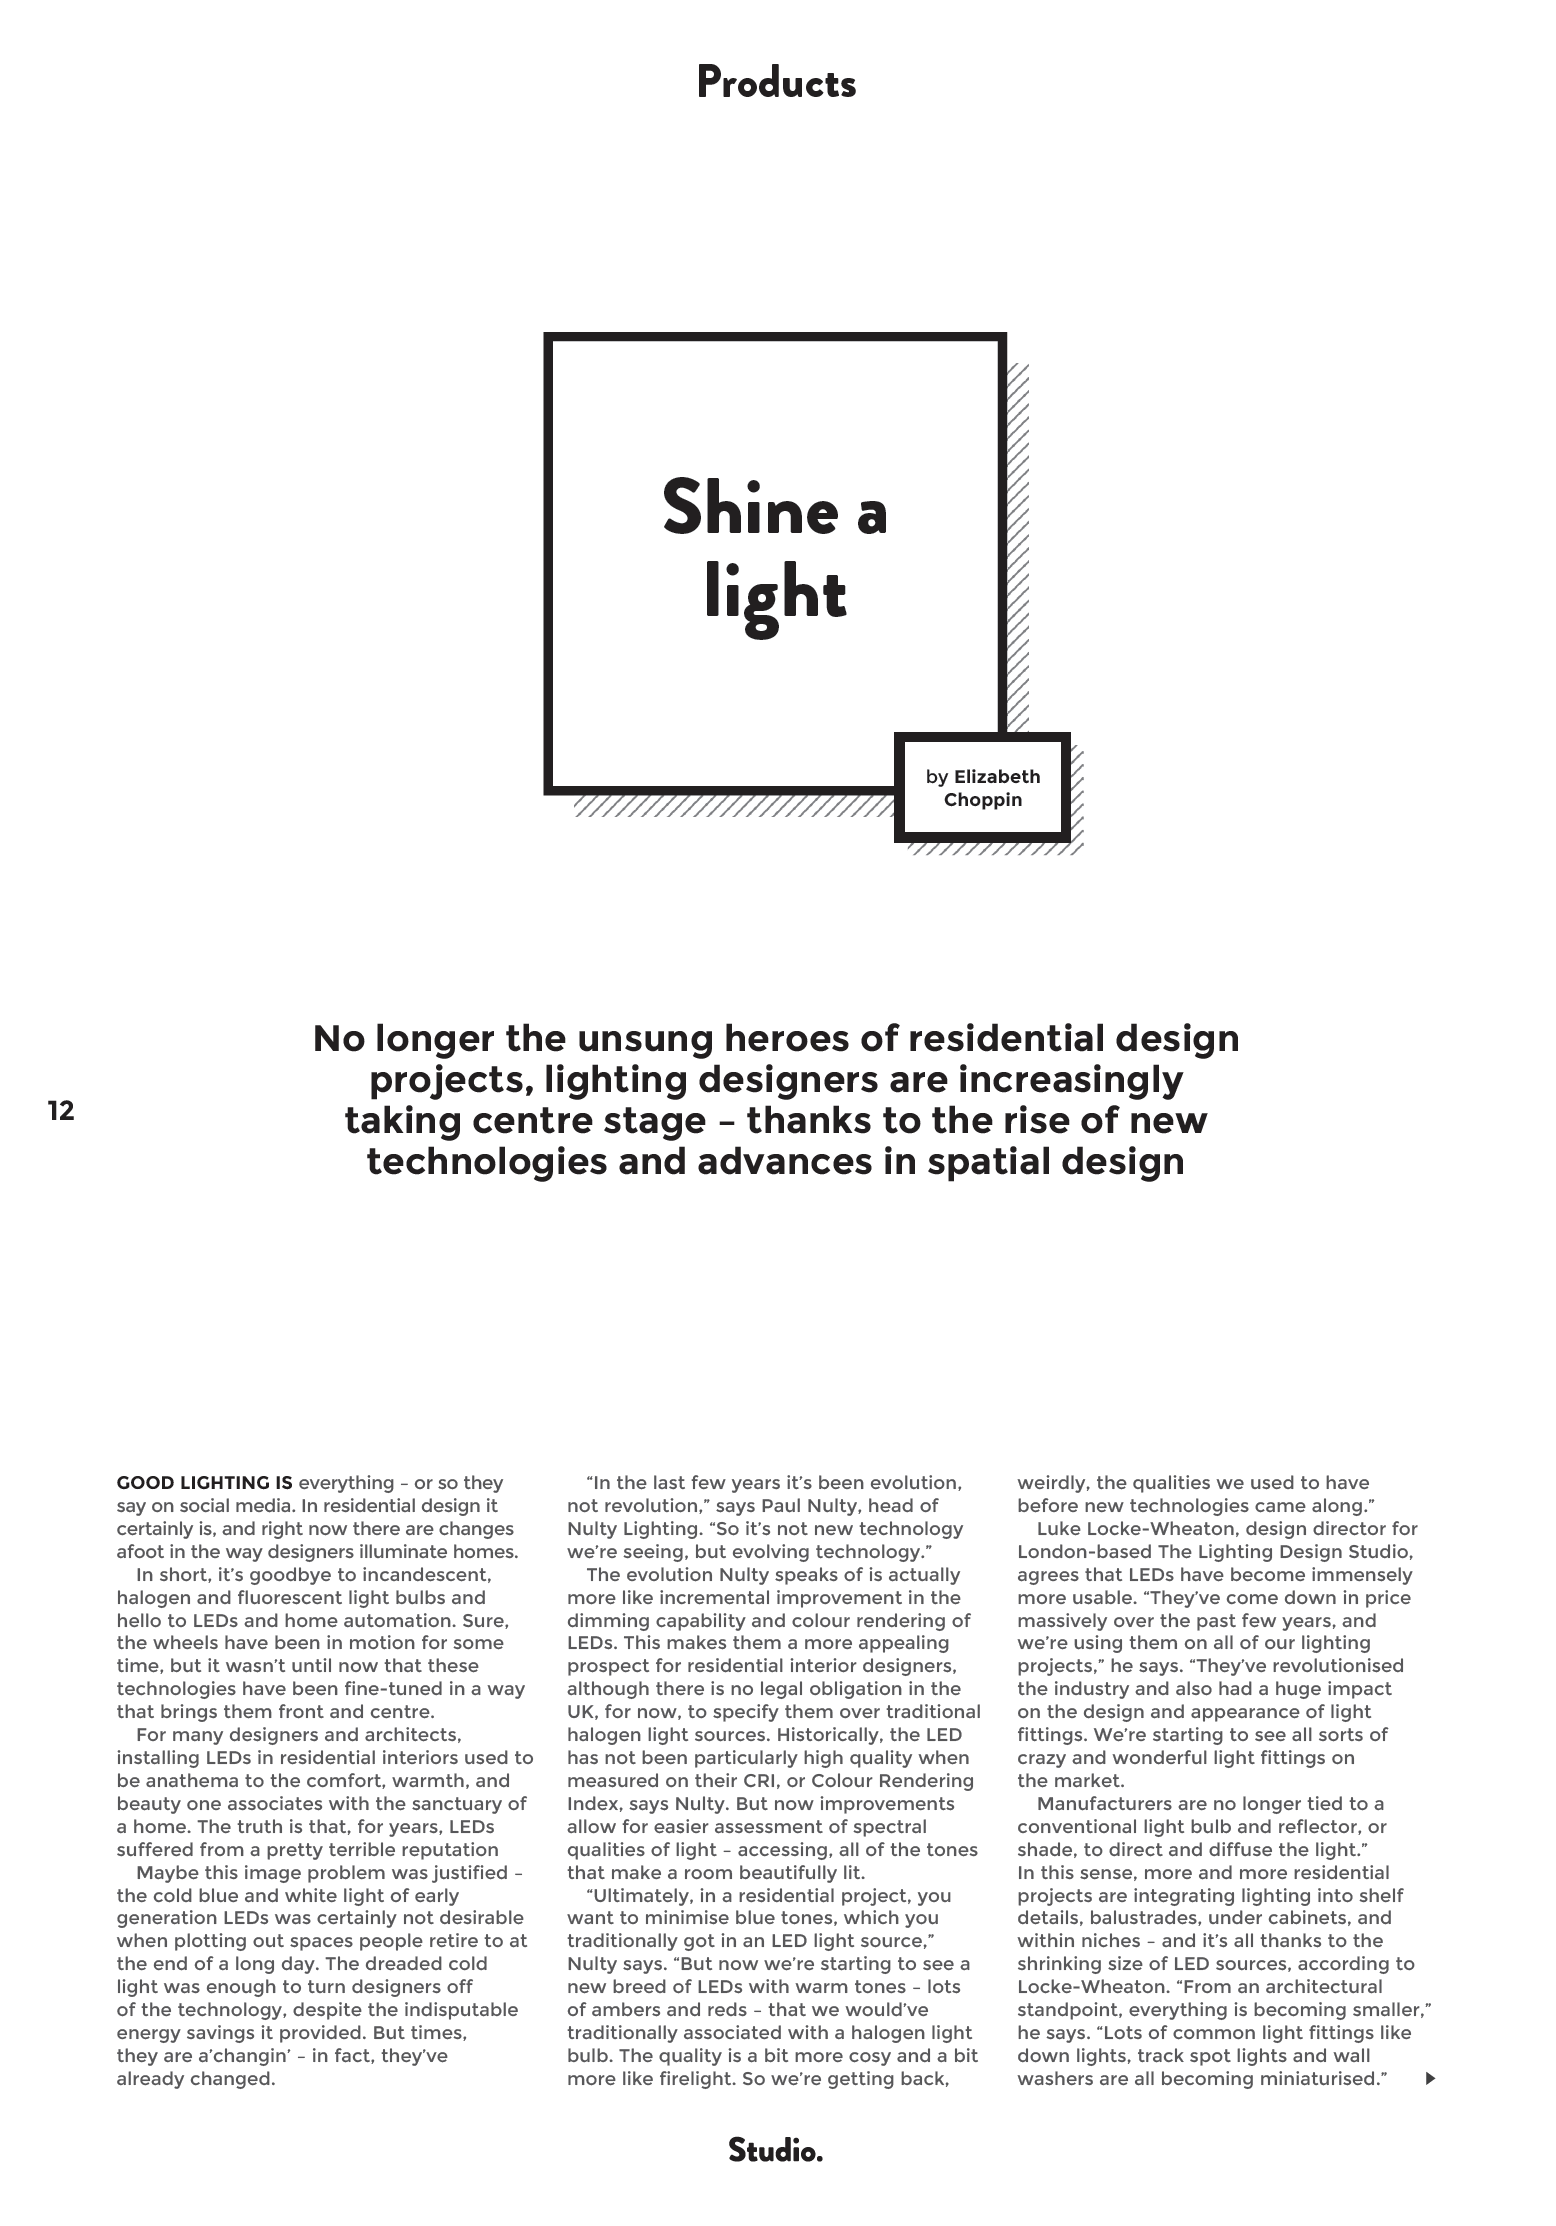 Studio. Magazine, John Cullen, Brian Woulfe, Designed by Woulfe, Lighting